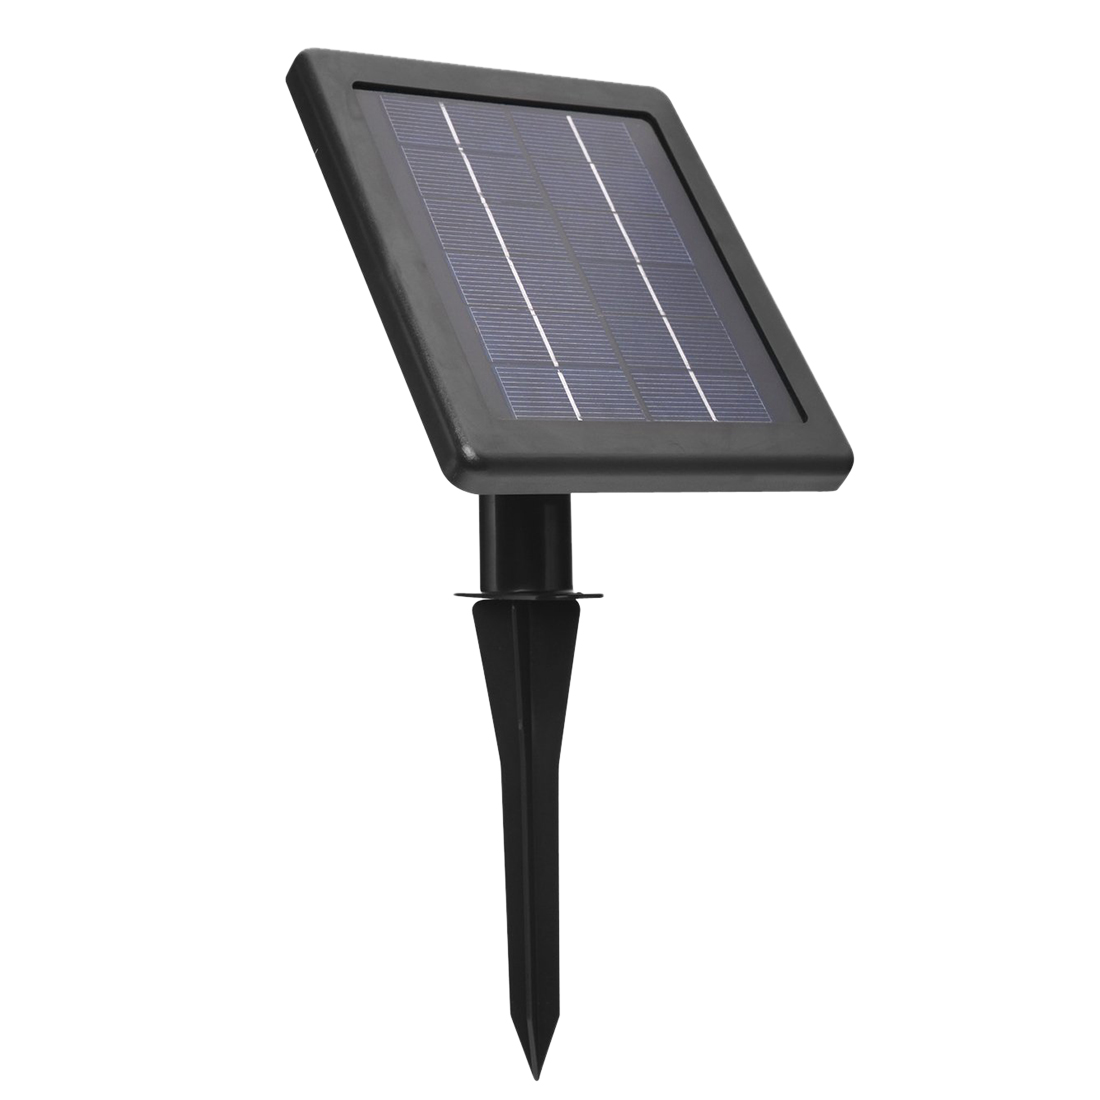 Rechargeable Waterproof Solar Powered 30 LED Spot Light White Lamp with Lithium Battery Inside for Lawn, Garden, Road, Hotel 24 led white light solar powered rechargeable camping lamp lantern green white black